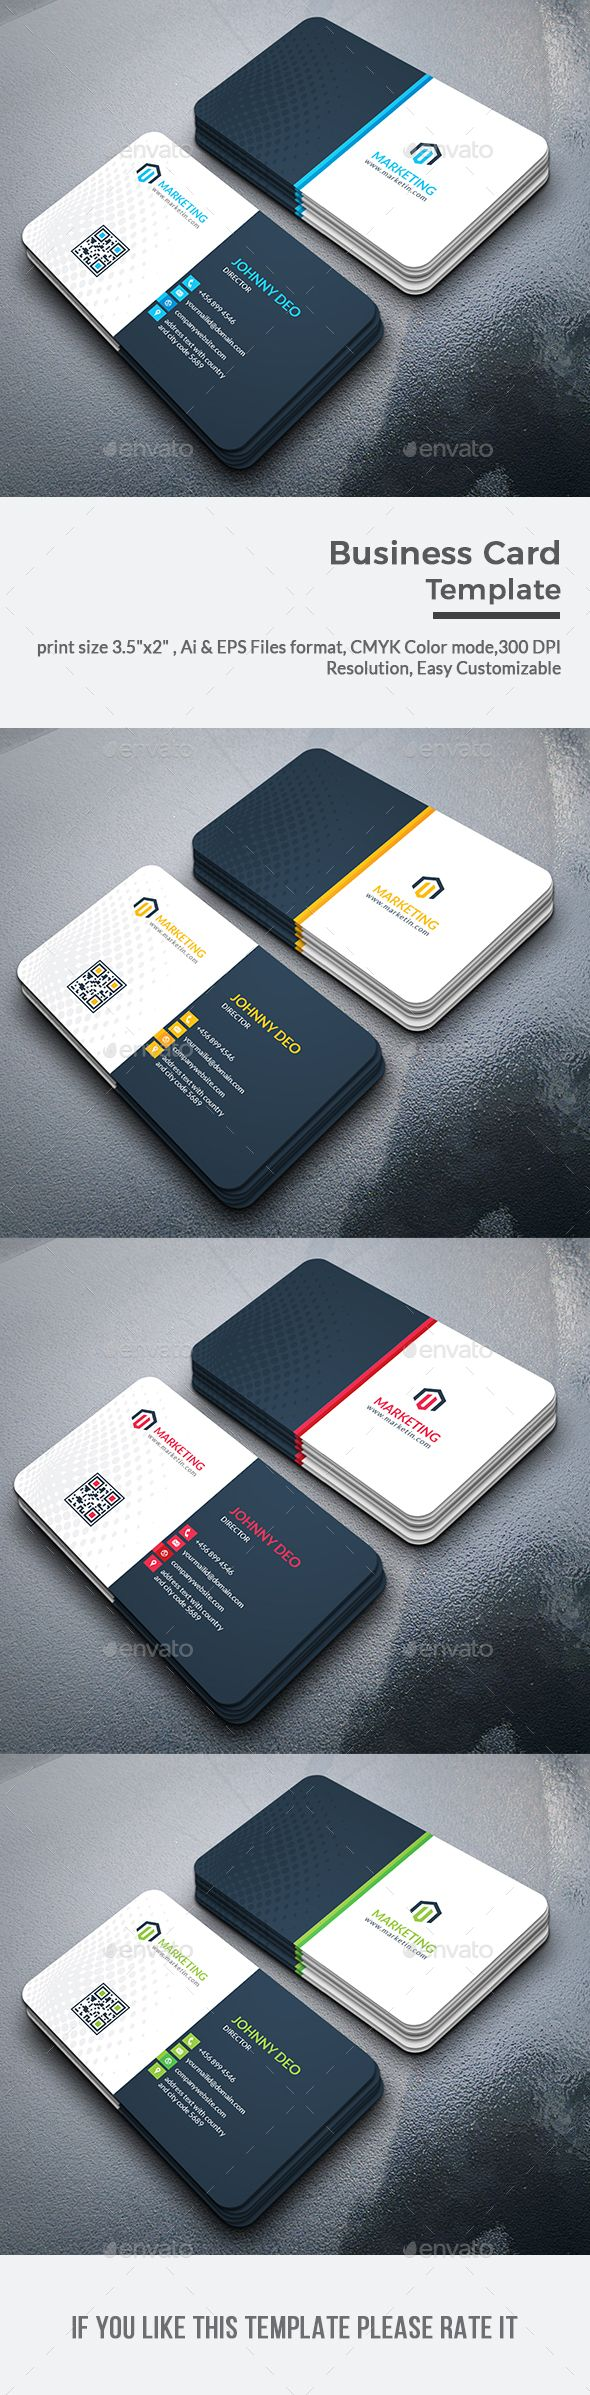 Business Card | Business cards, Card printing and Print templates